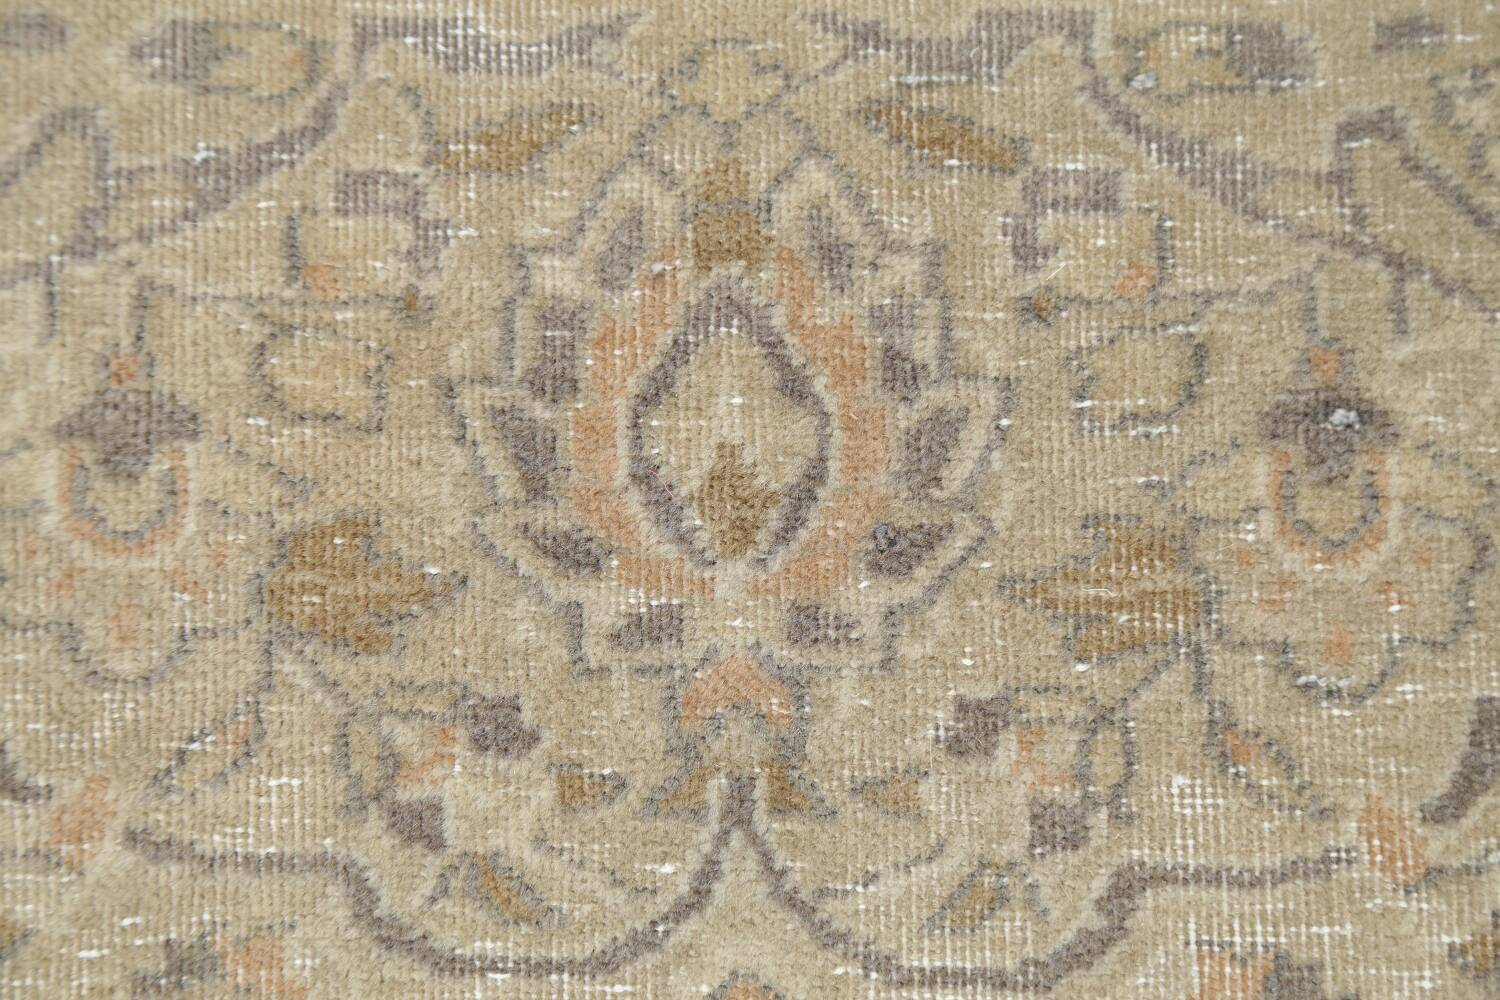 Muted Distressed Antique Kashan Persian Area Rug 7x10 image 9